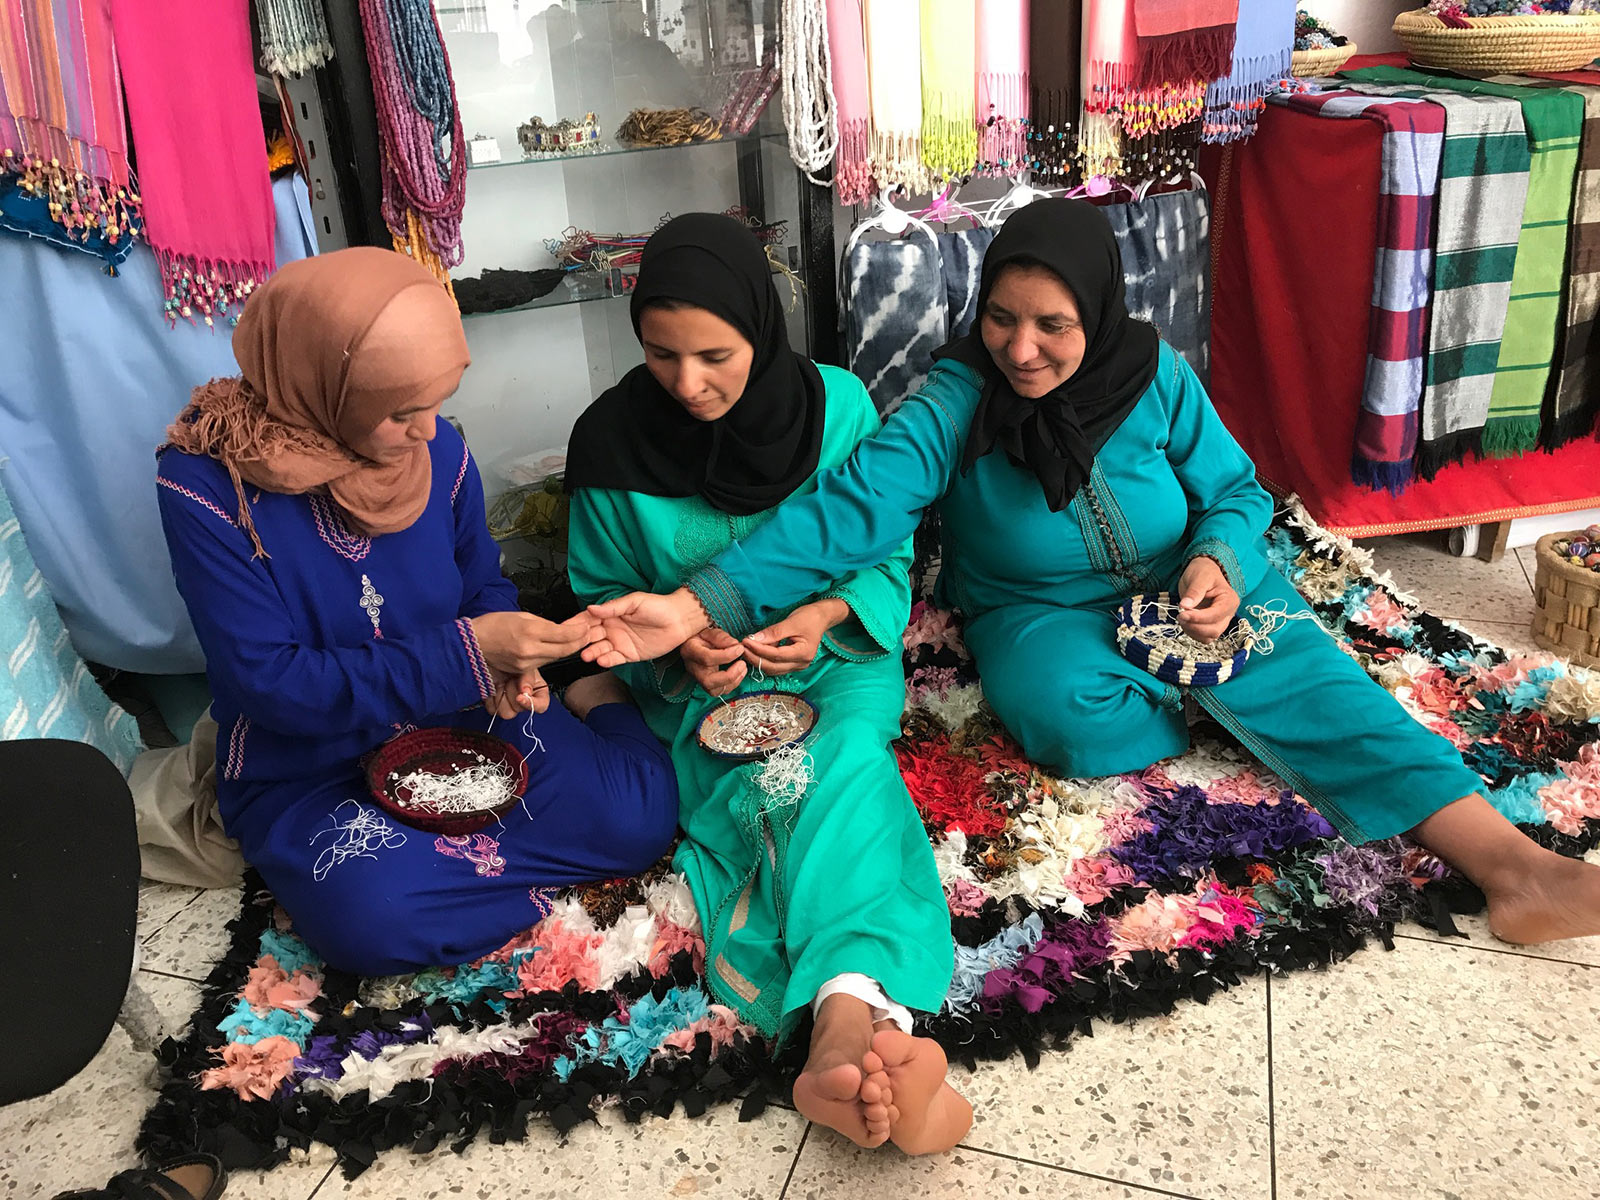 Women sitting together on the floor making jewelry